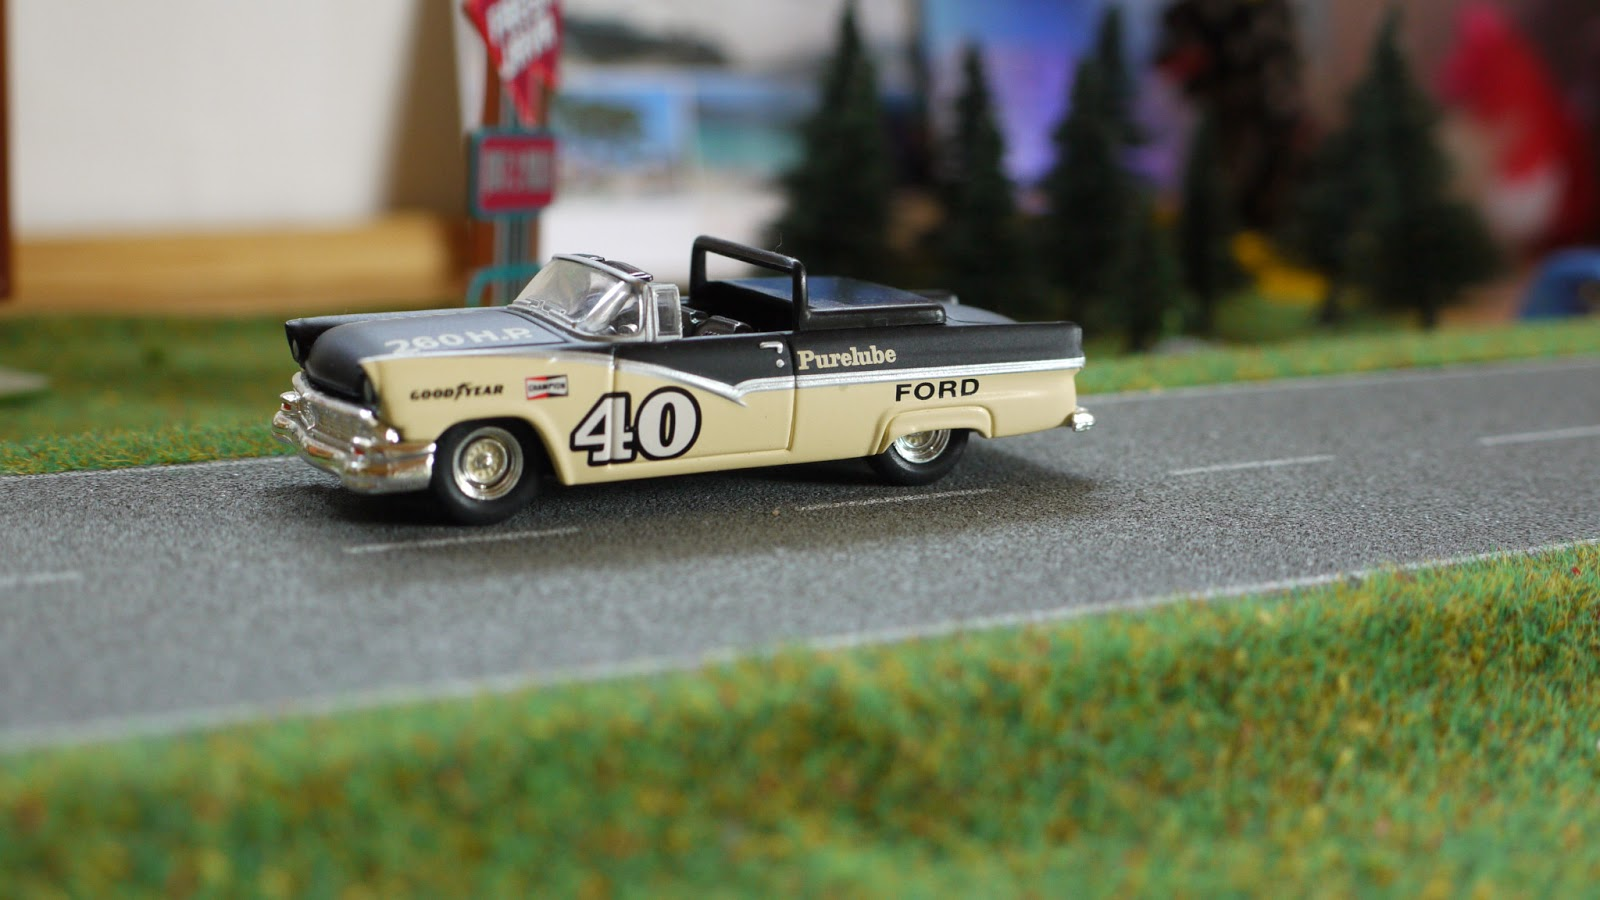 1955 ford fairlane crown victoria blog cars on line - 1956 Ford Crown Victoria Hot Wheels